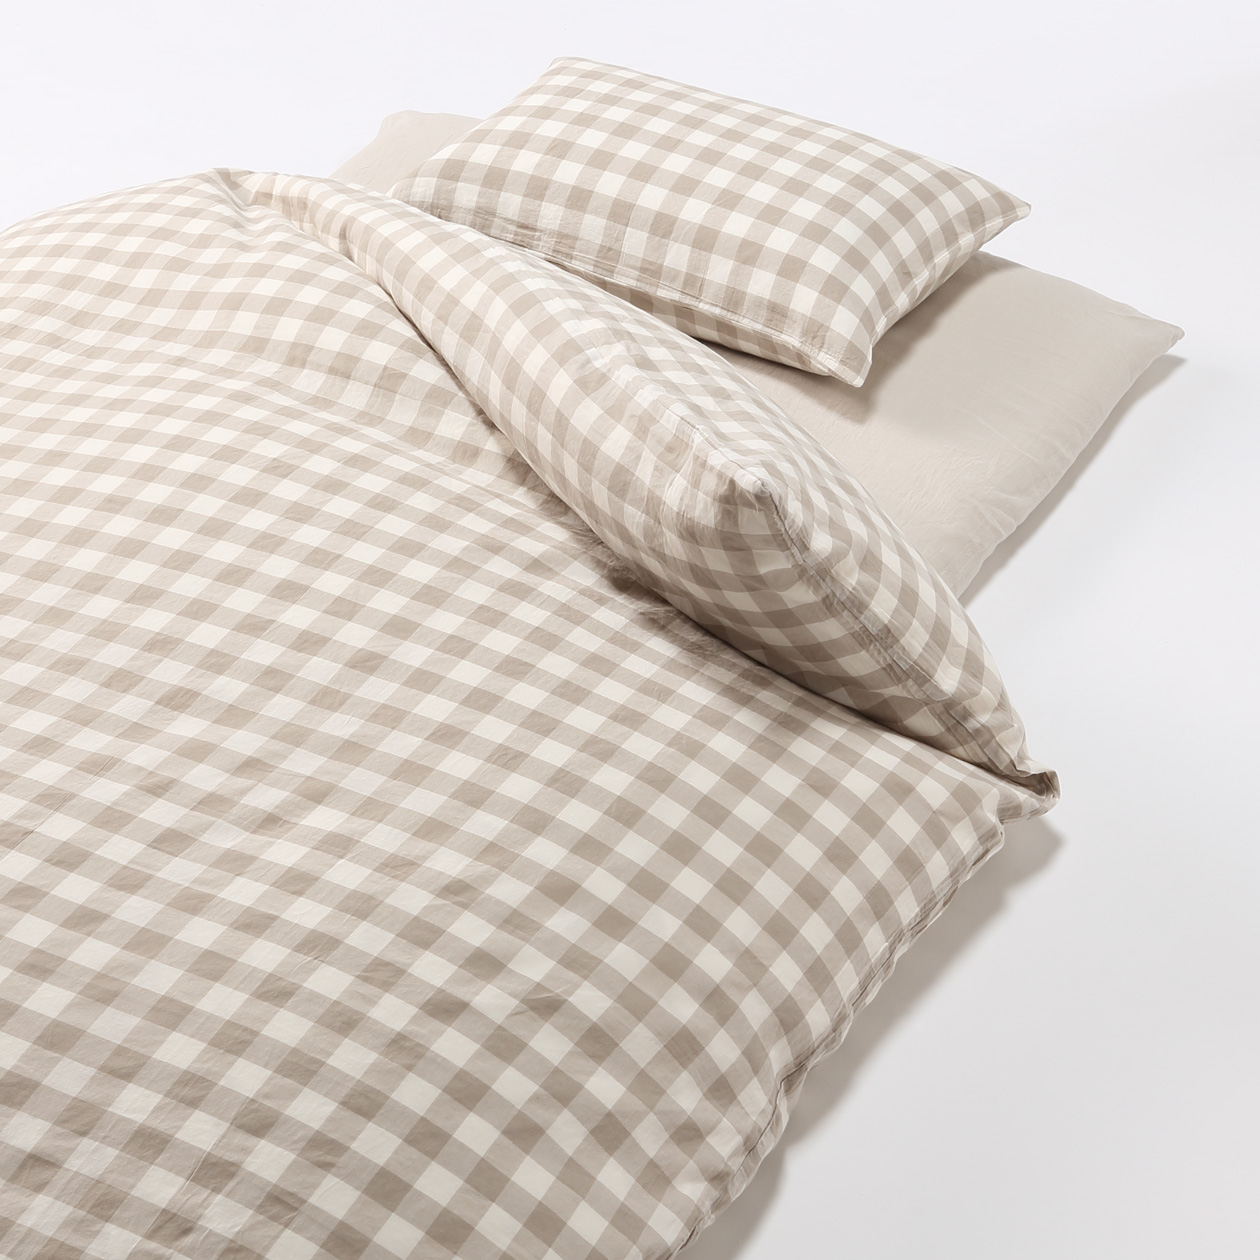 Muji Bed Sheets Cover Set For Futon S Beige Check 150 210cm Muji